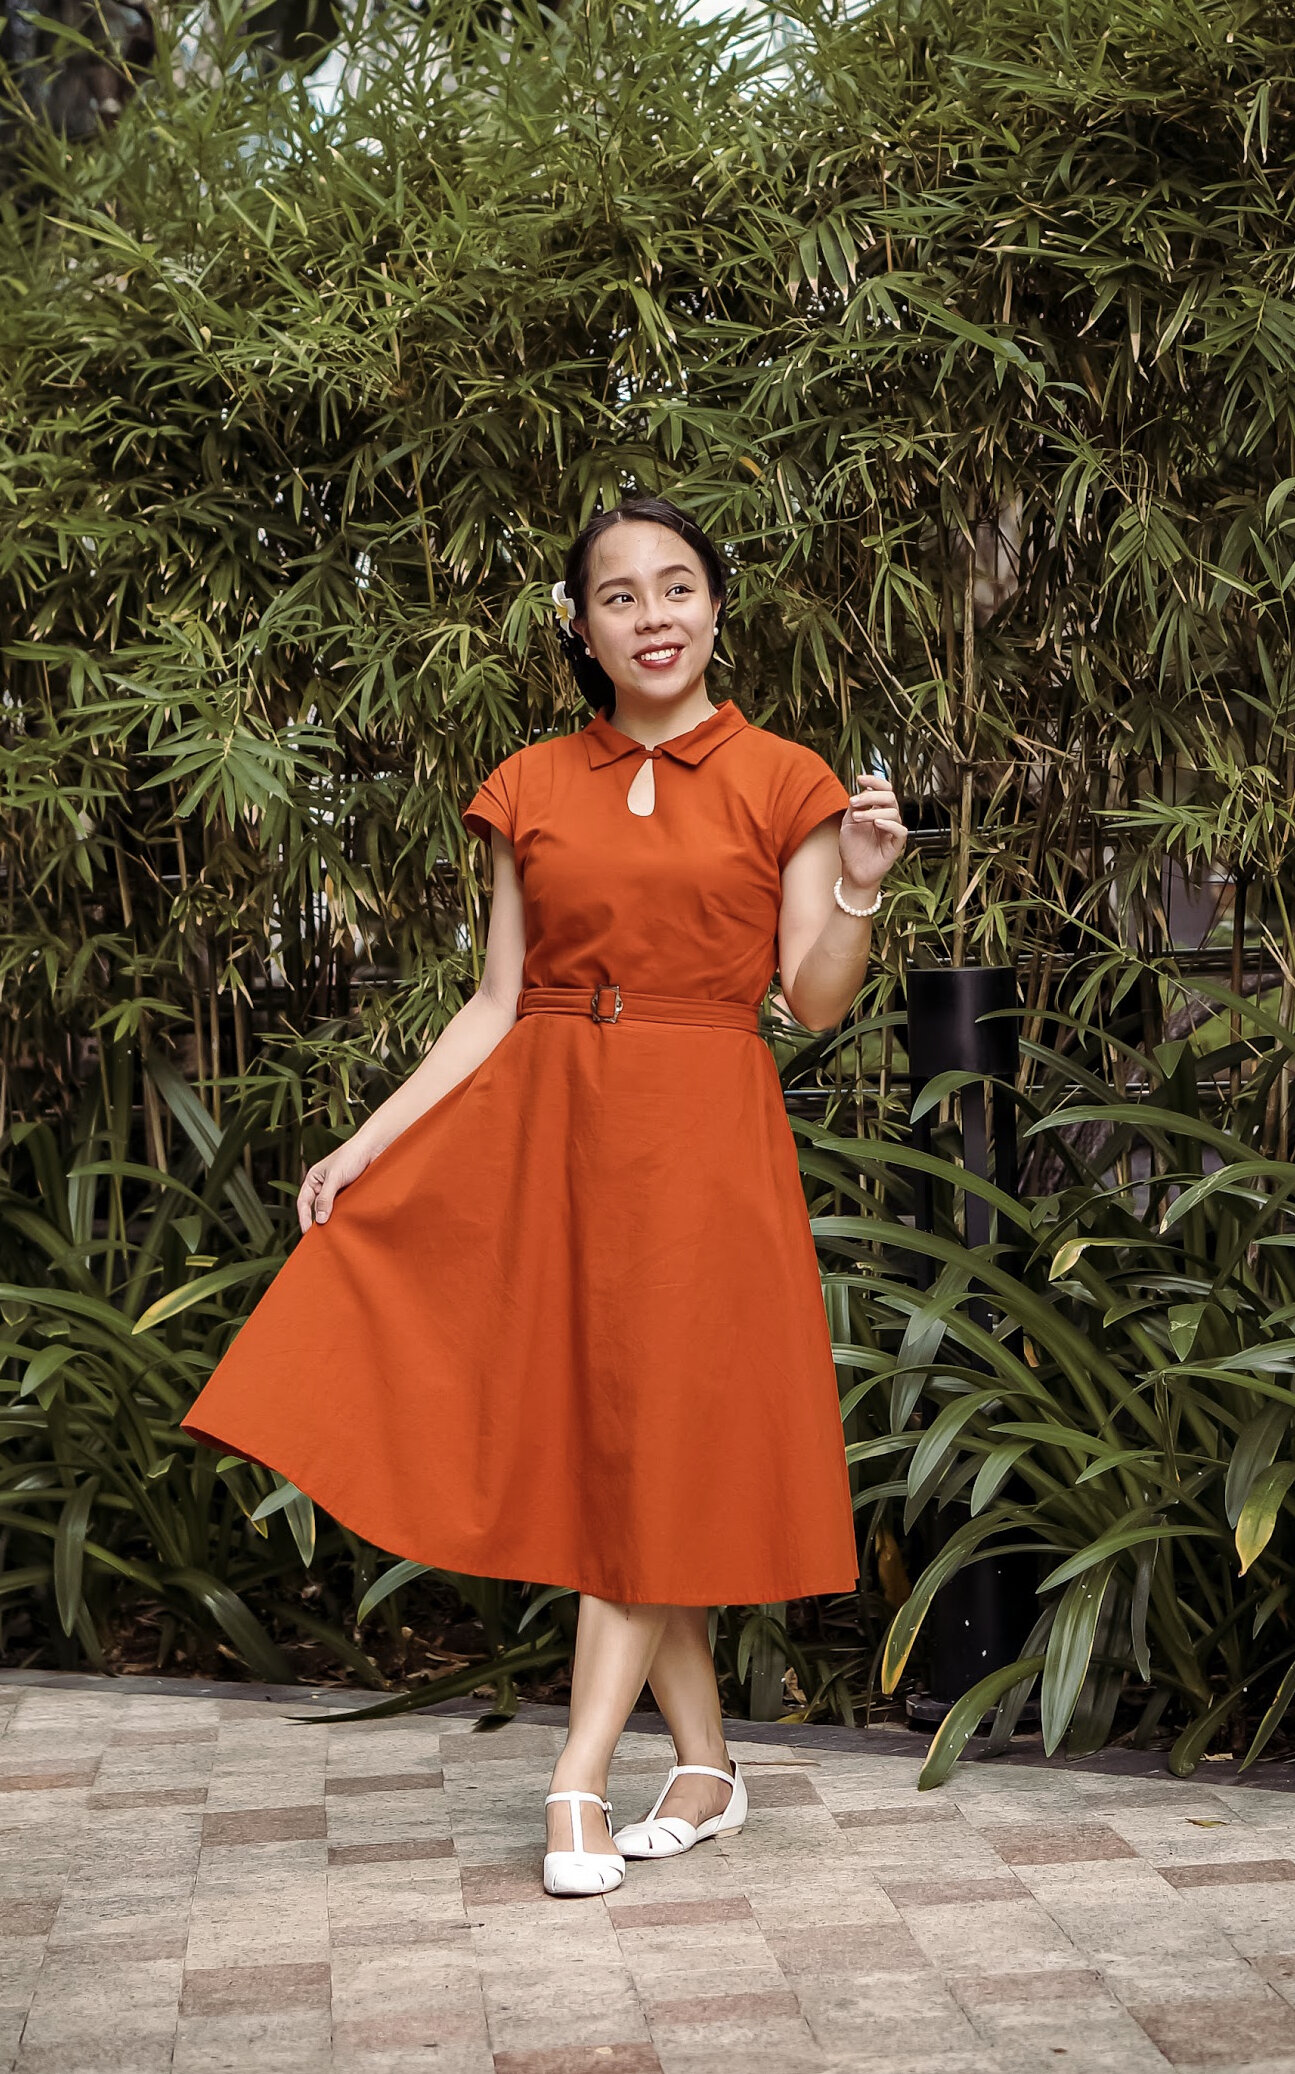 Lizzy wearing Rose's Wardrobe new 'Josie' dress (gifted to Lizzy), available in a range of colours and fabrics including this beautiful Sizzle - Hemp/organic cotton fabric.